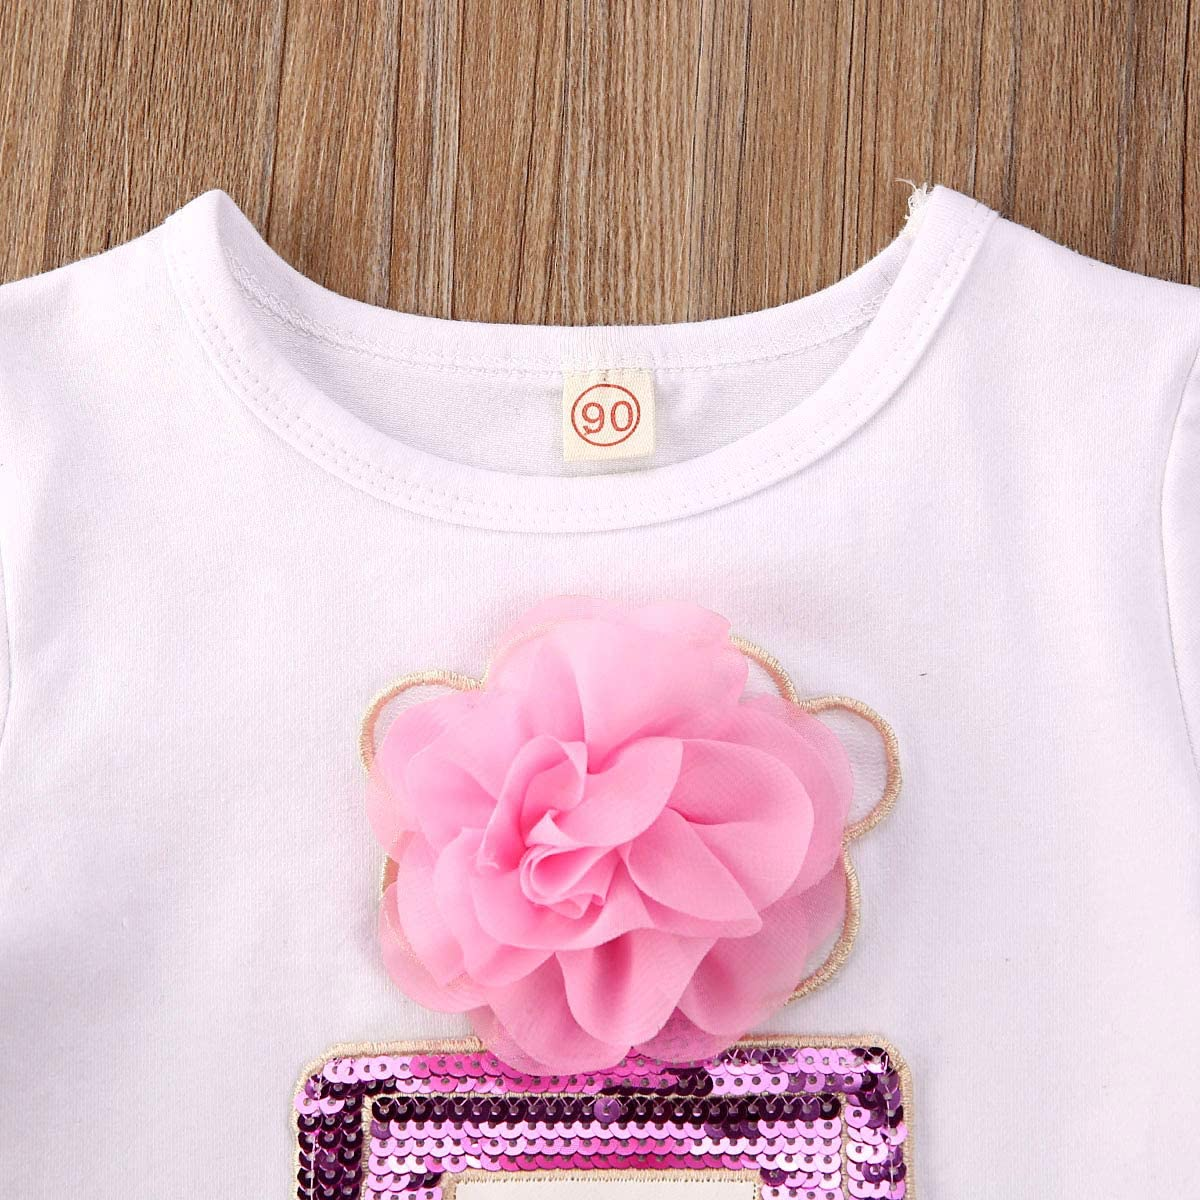 Toddler Baby Kids Girl Clothes Floral Tops Short Sleeve T-Shirt Mini Button Leather Skirt Summer Spring Outfits 2Pcs Set